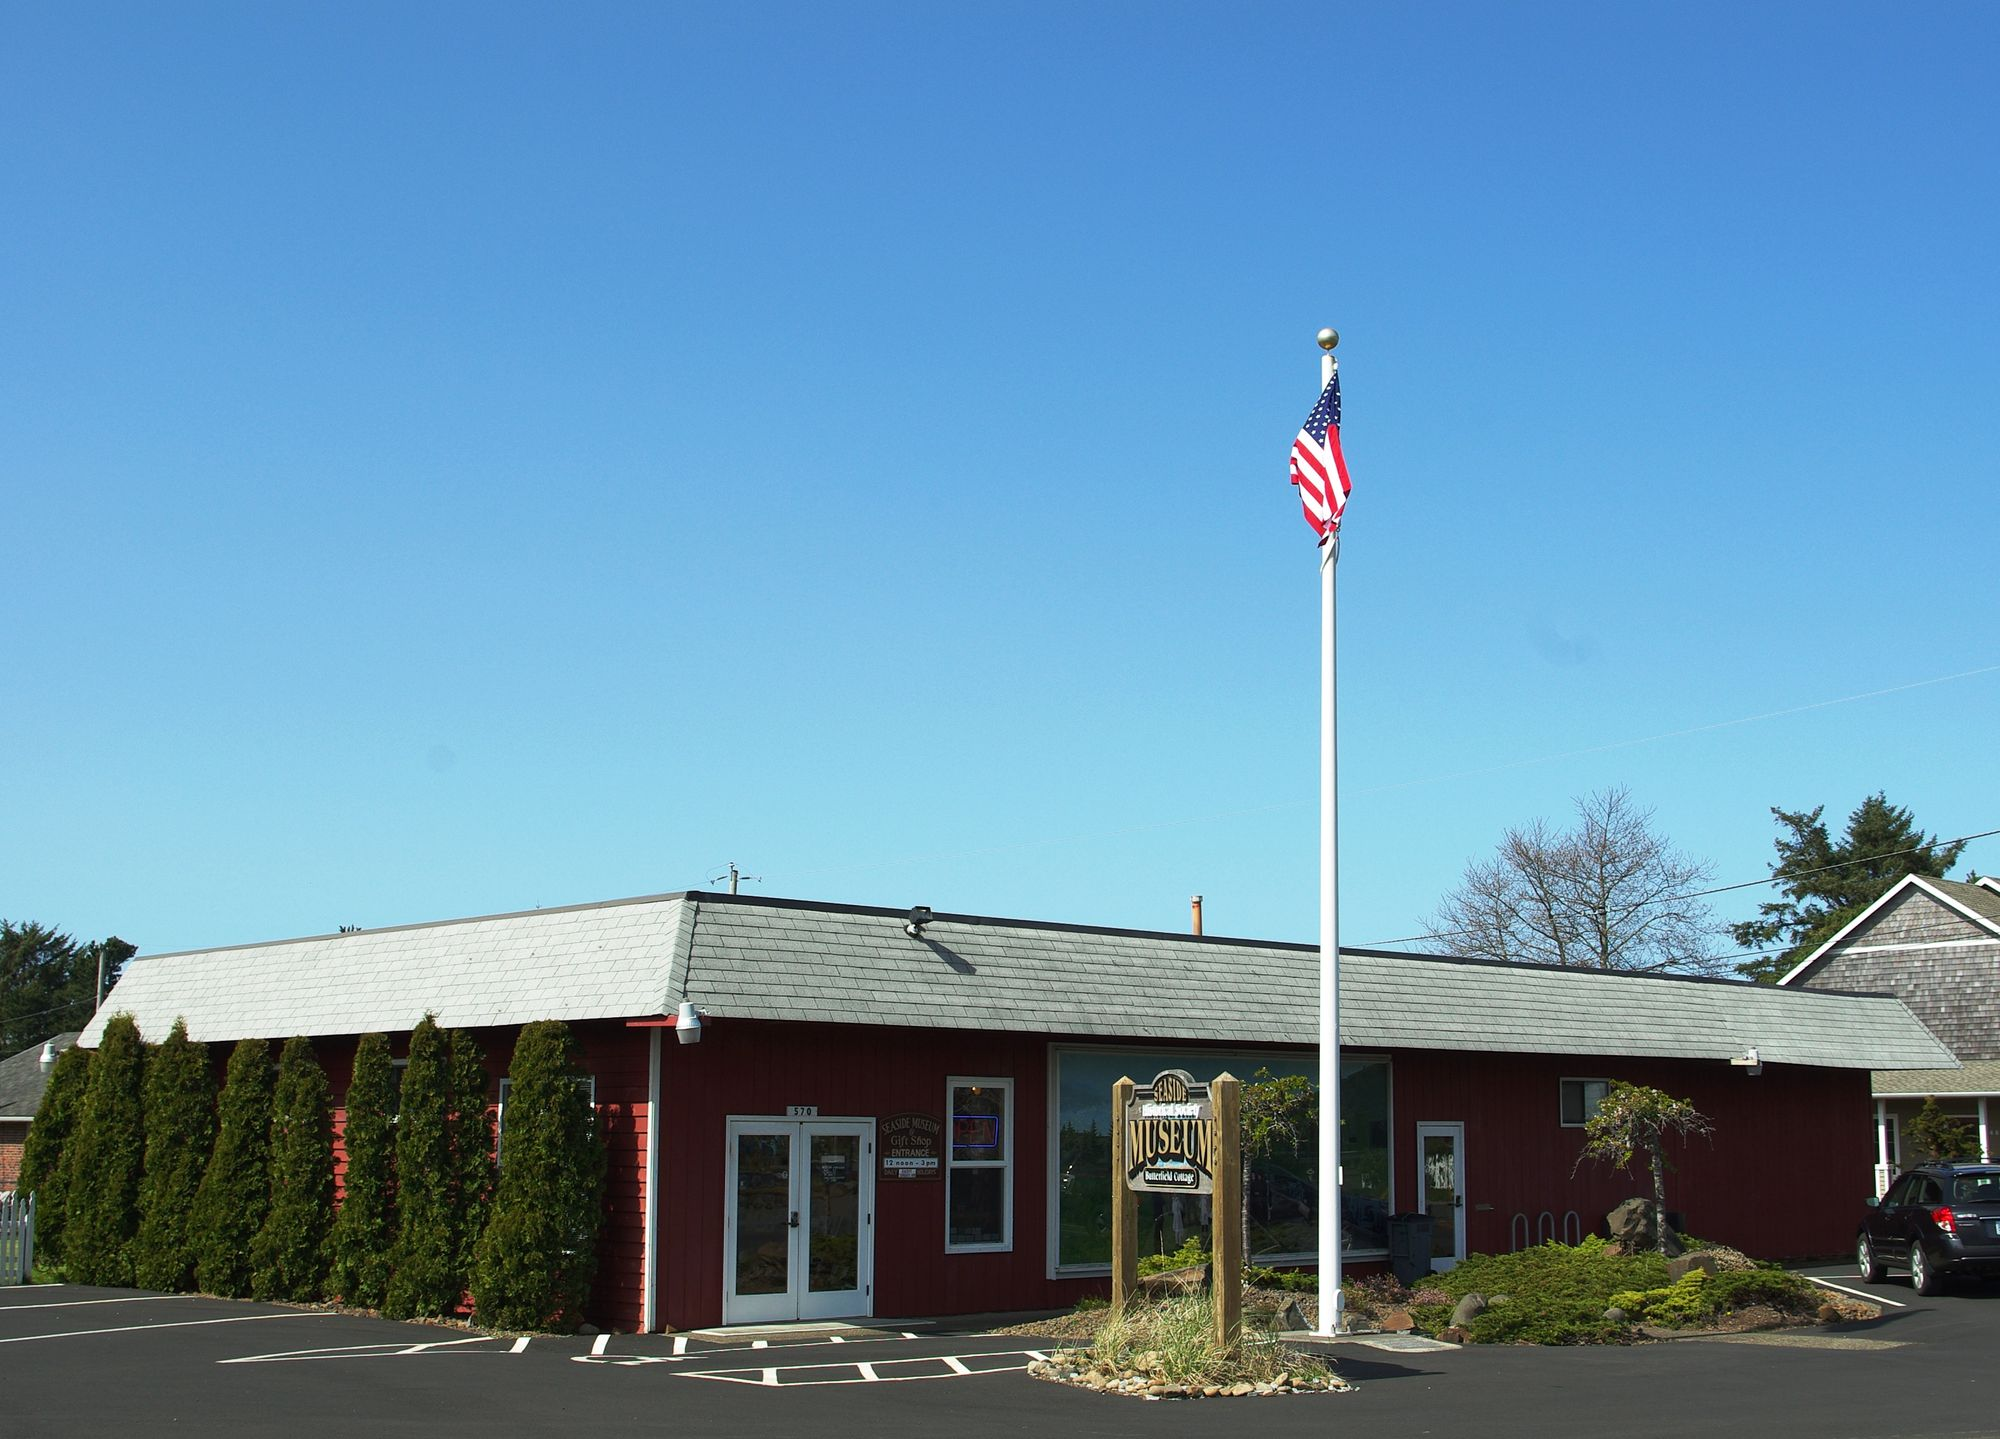 Seaside museum and Historical Society